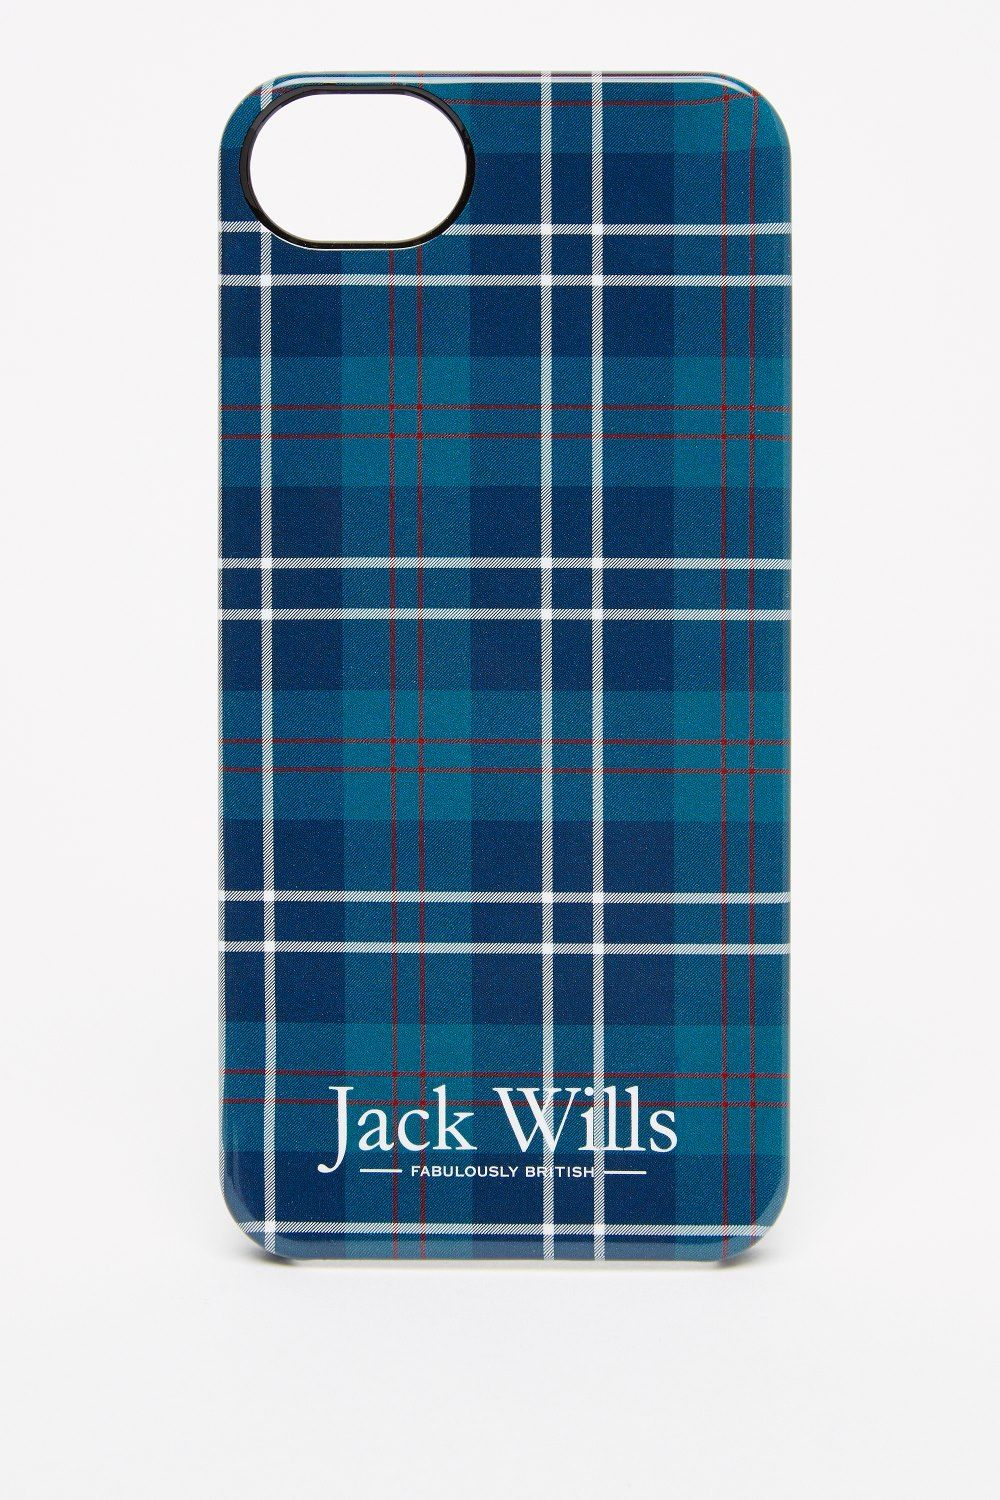 iphone 6 case jack wills